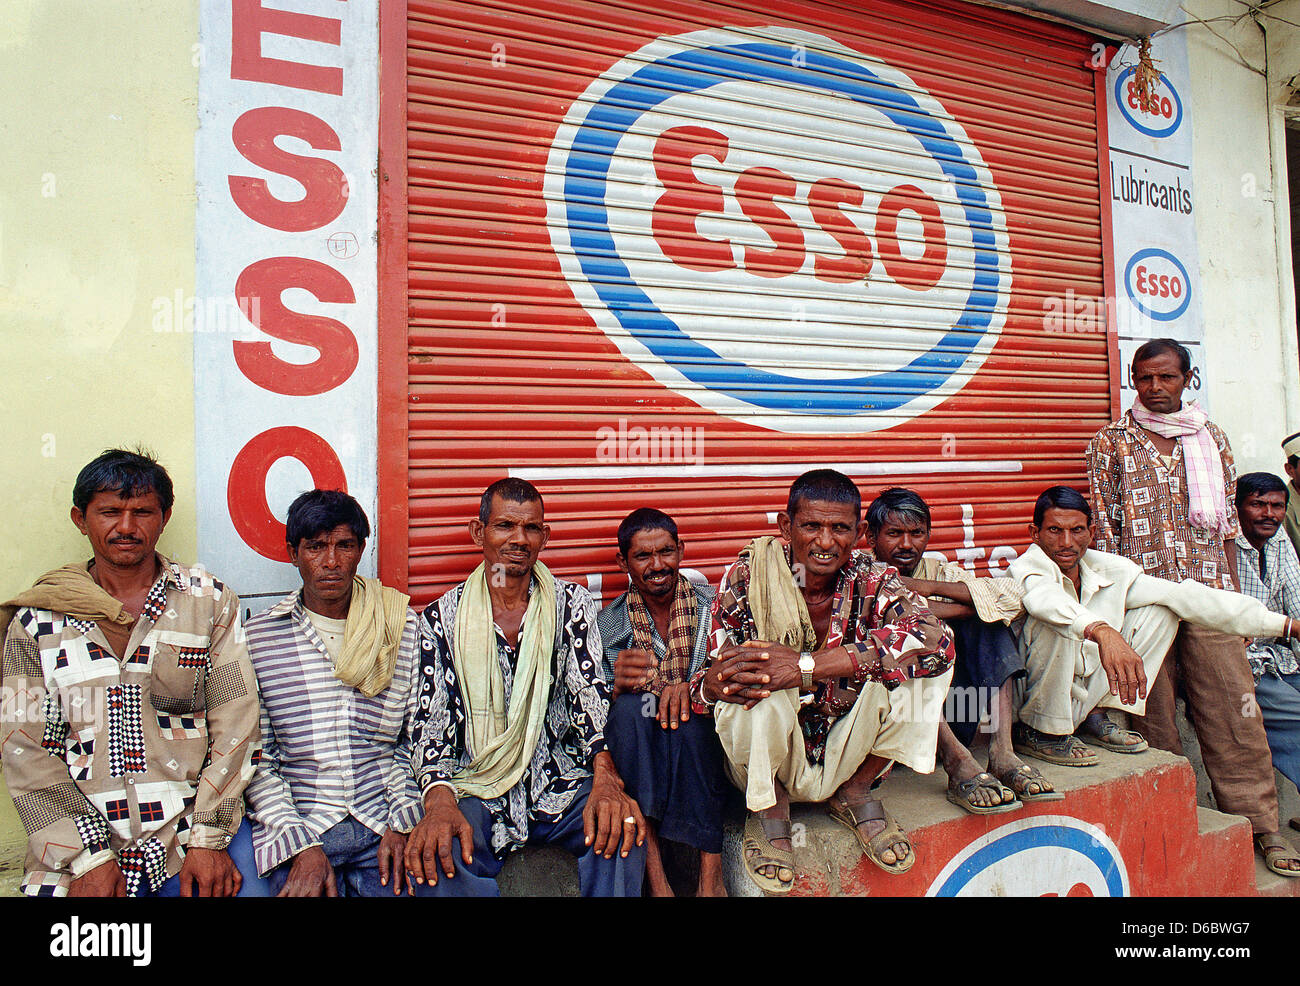 Under an advertisement for the multinational company Esso, Indian day labourers are waiting for work in a street - Stock Image